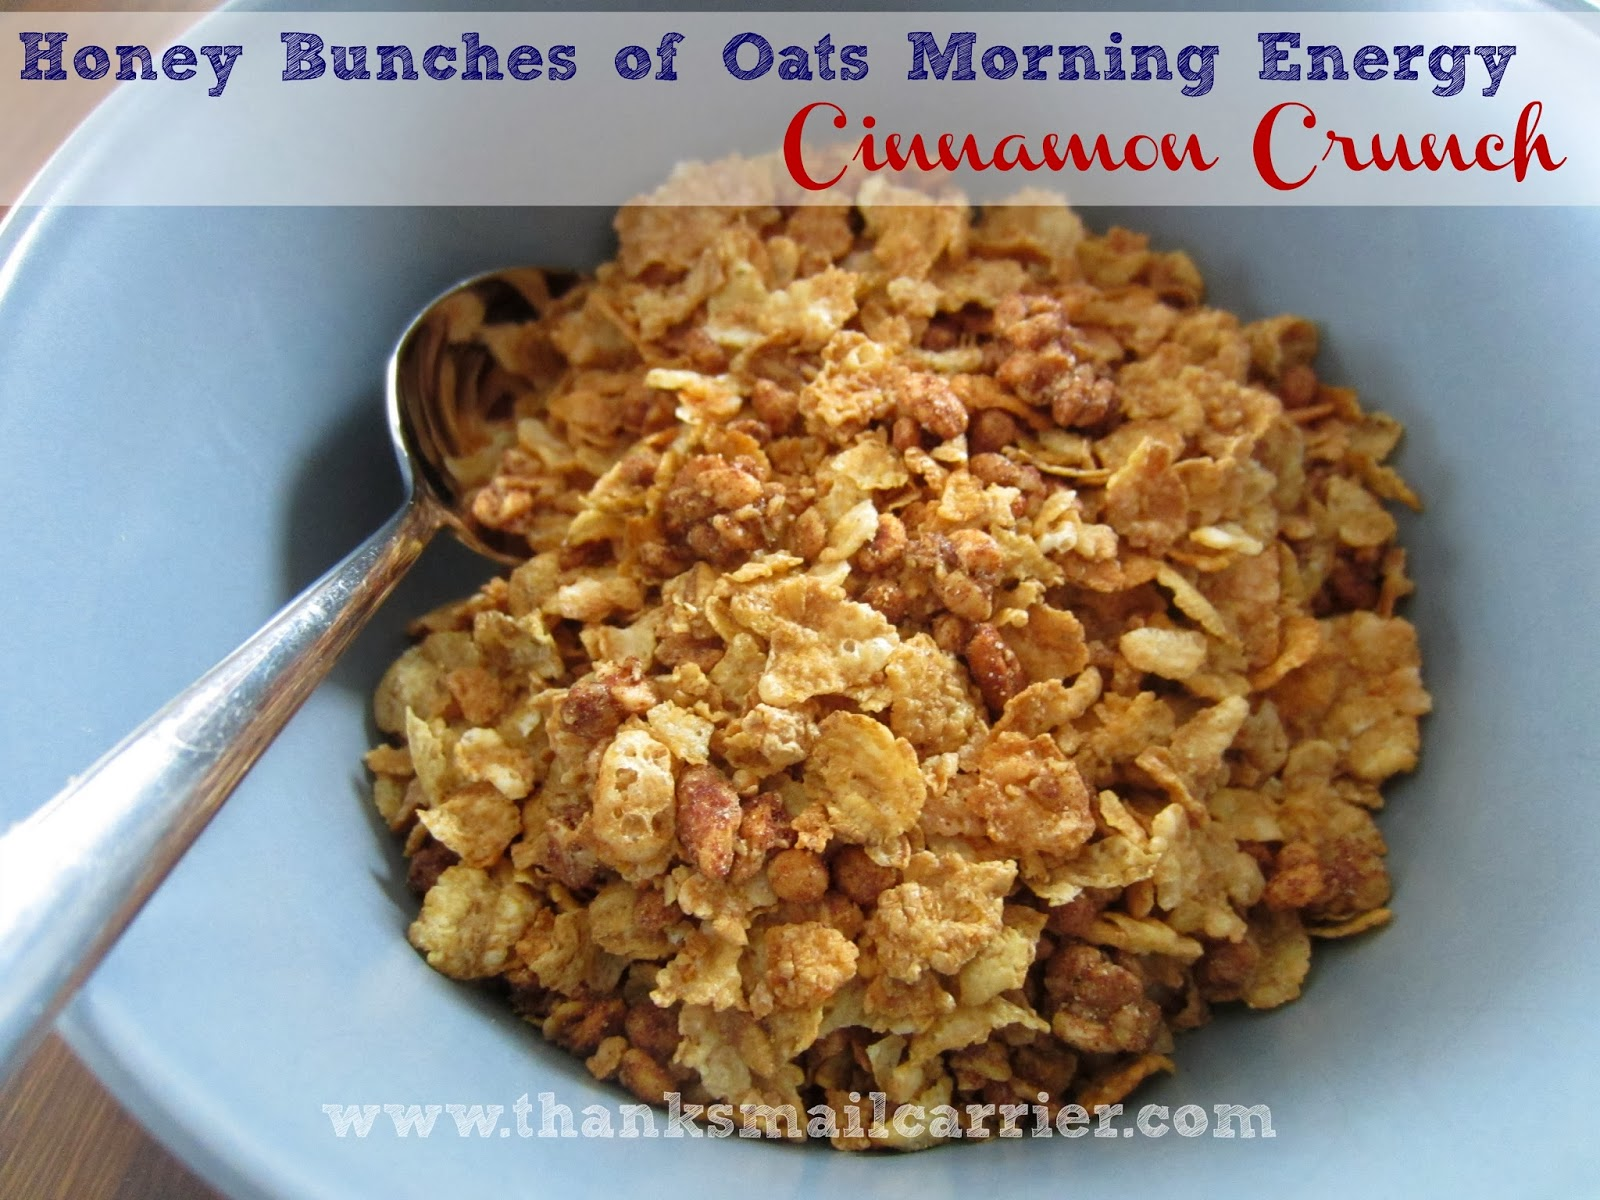 Honey Bunches of Oats Cinnamon